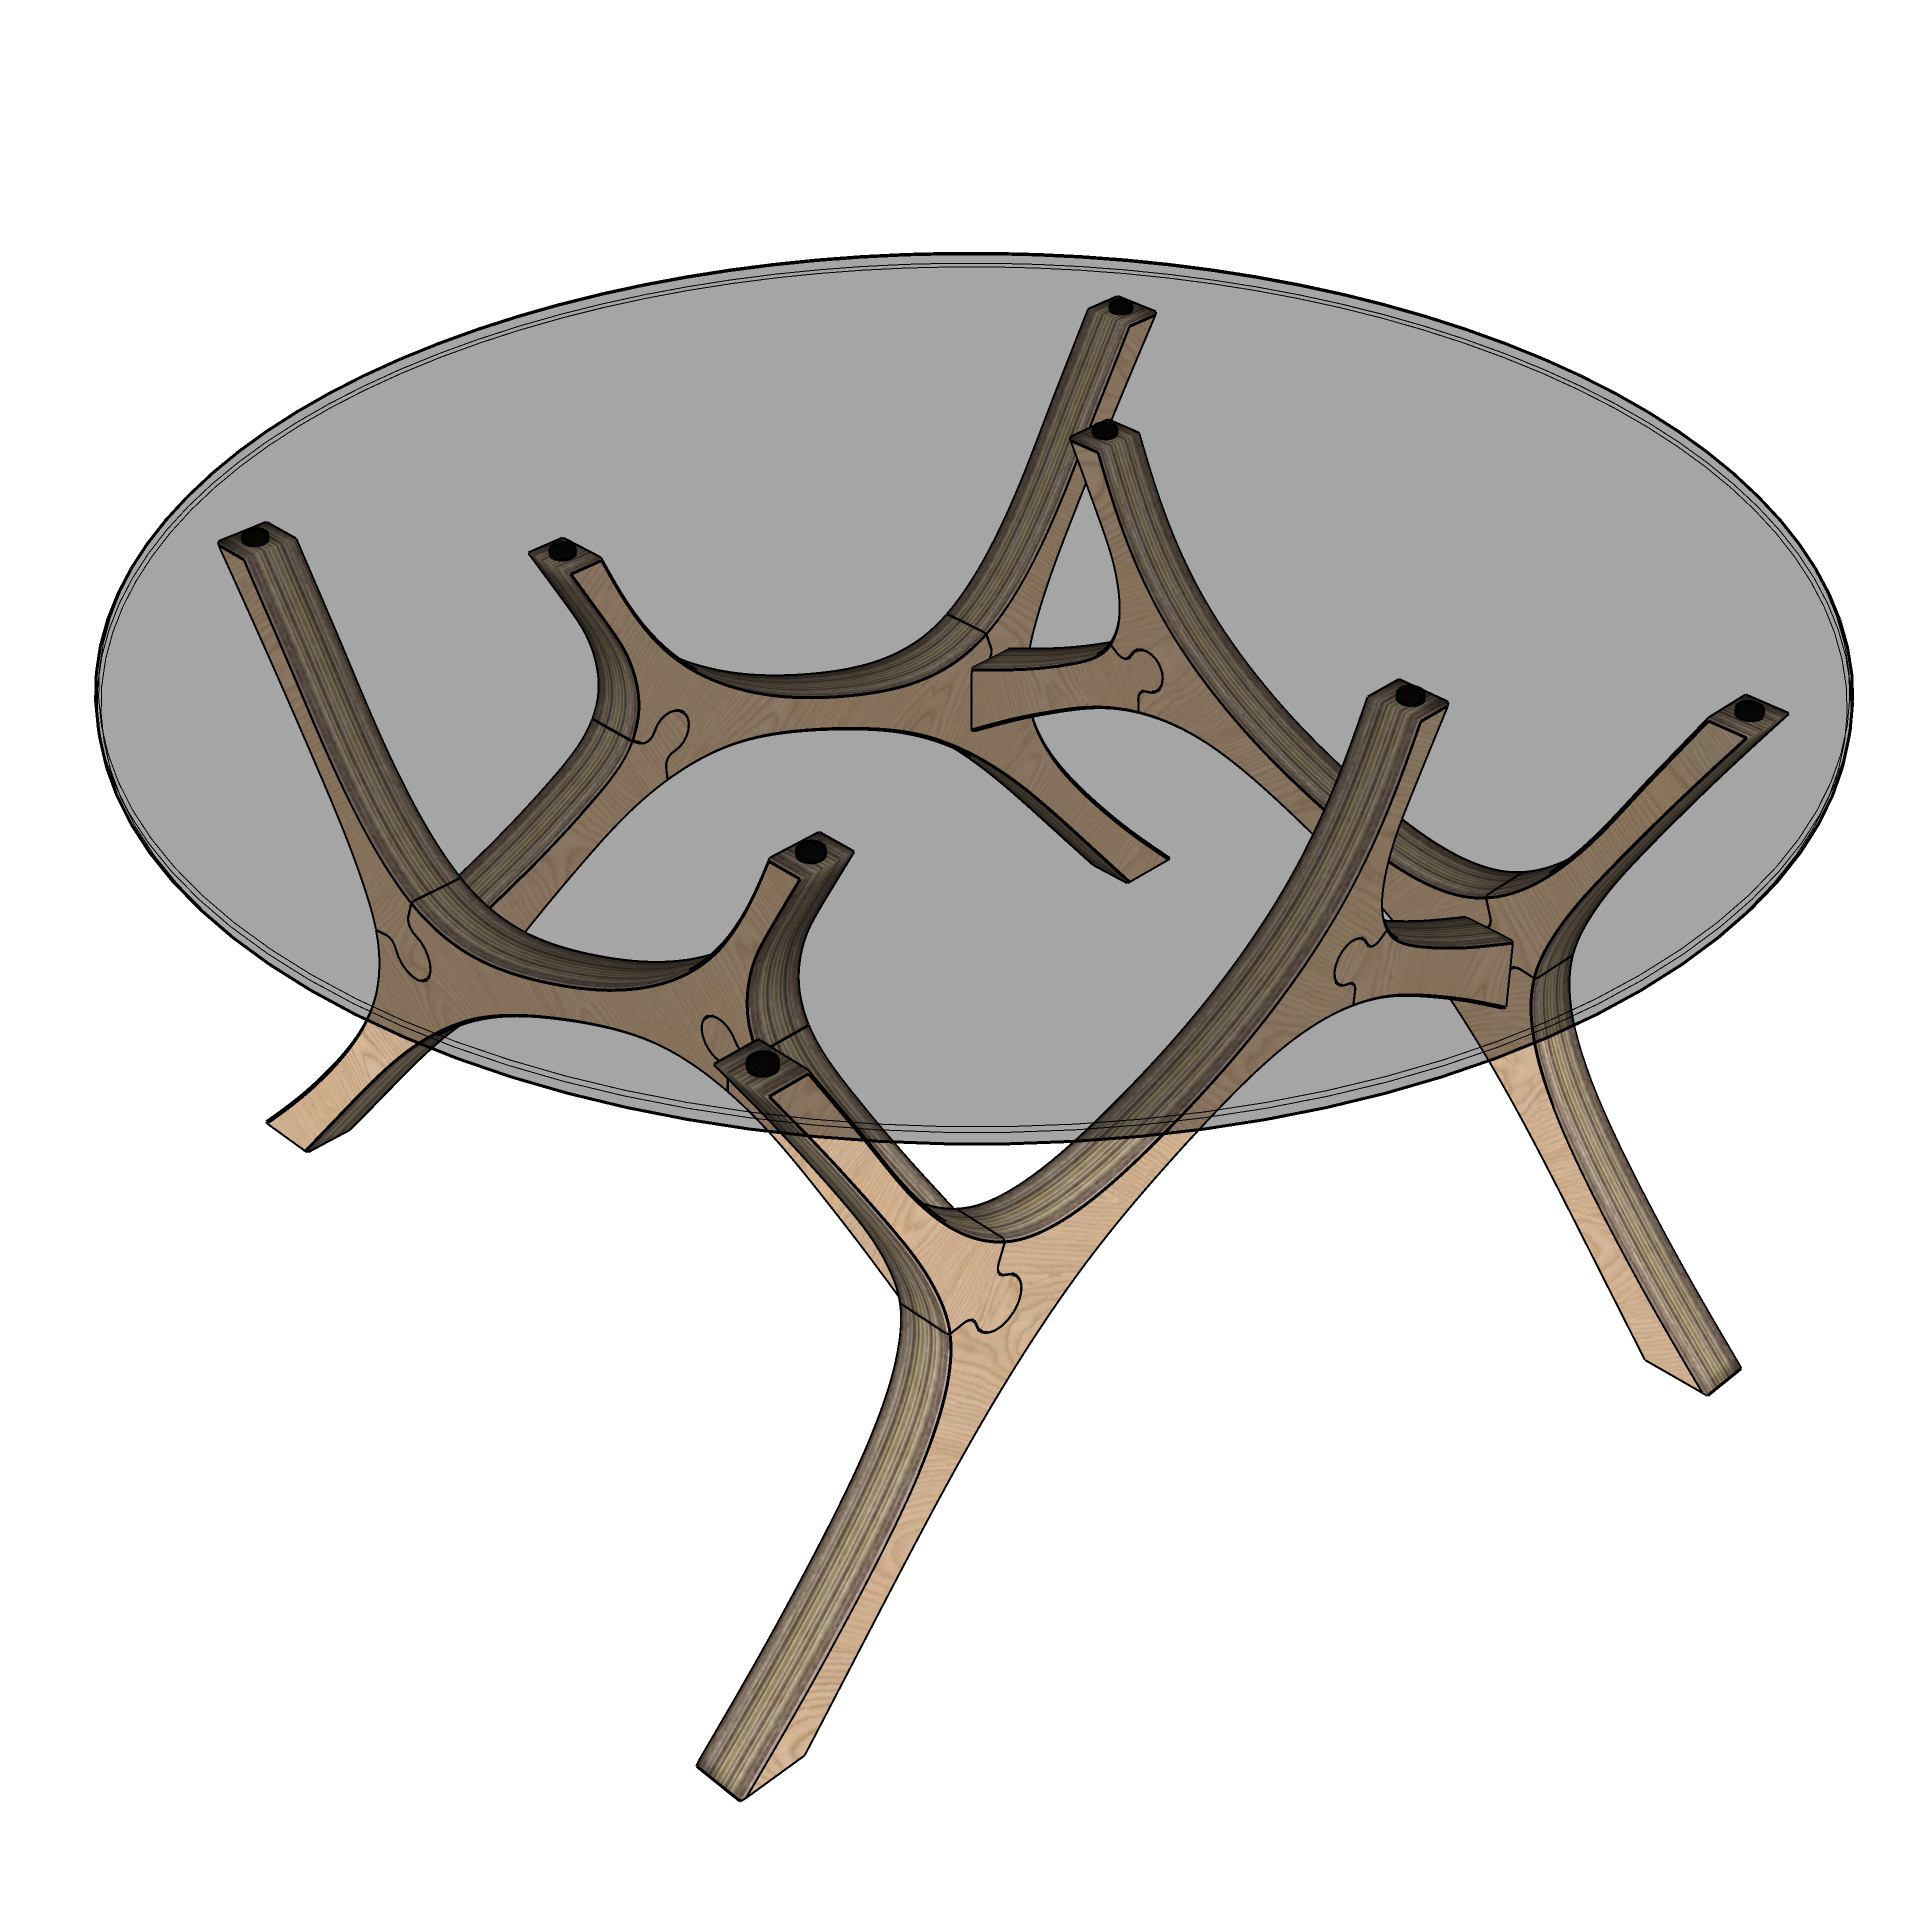 Coffee Table AI 01 Medium Screenshot.jpg